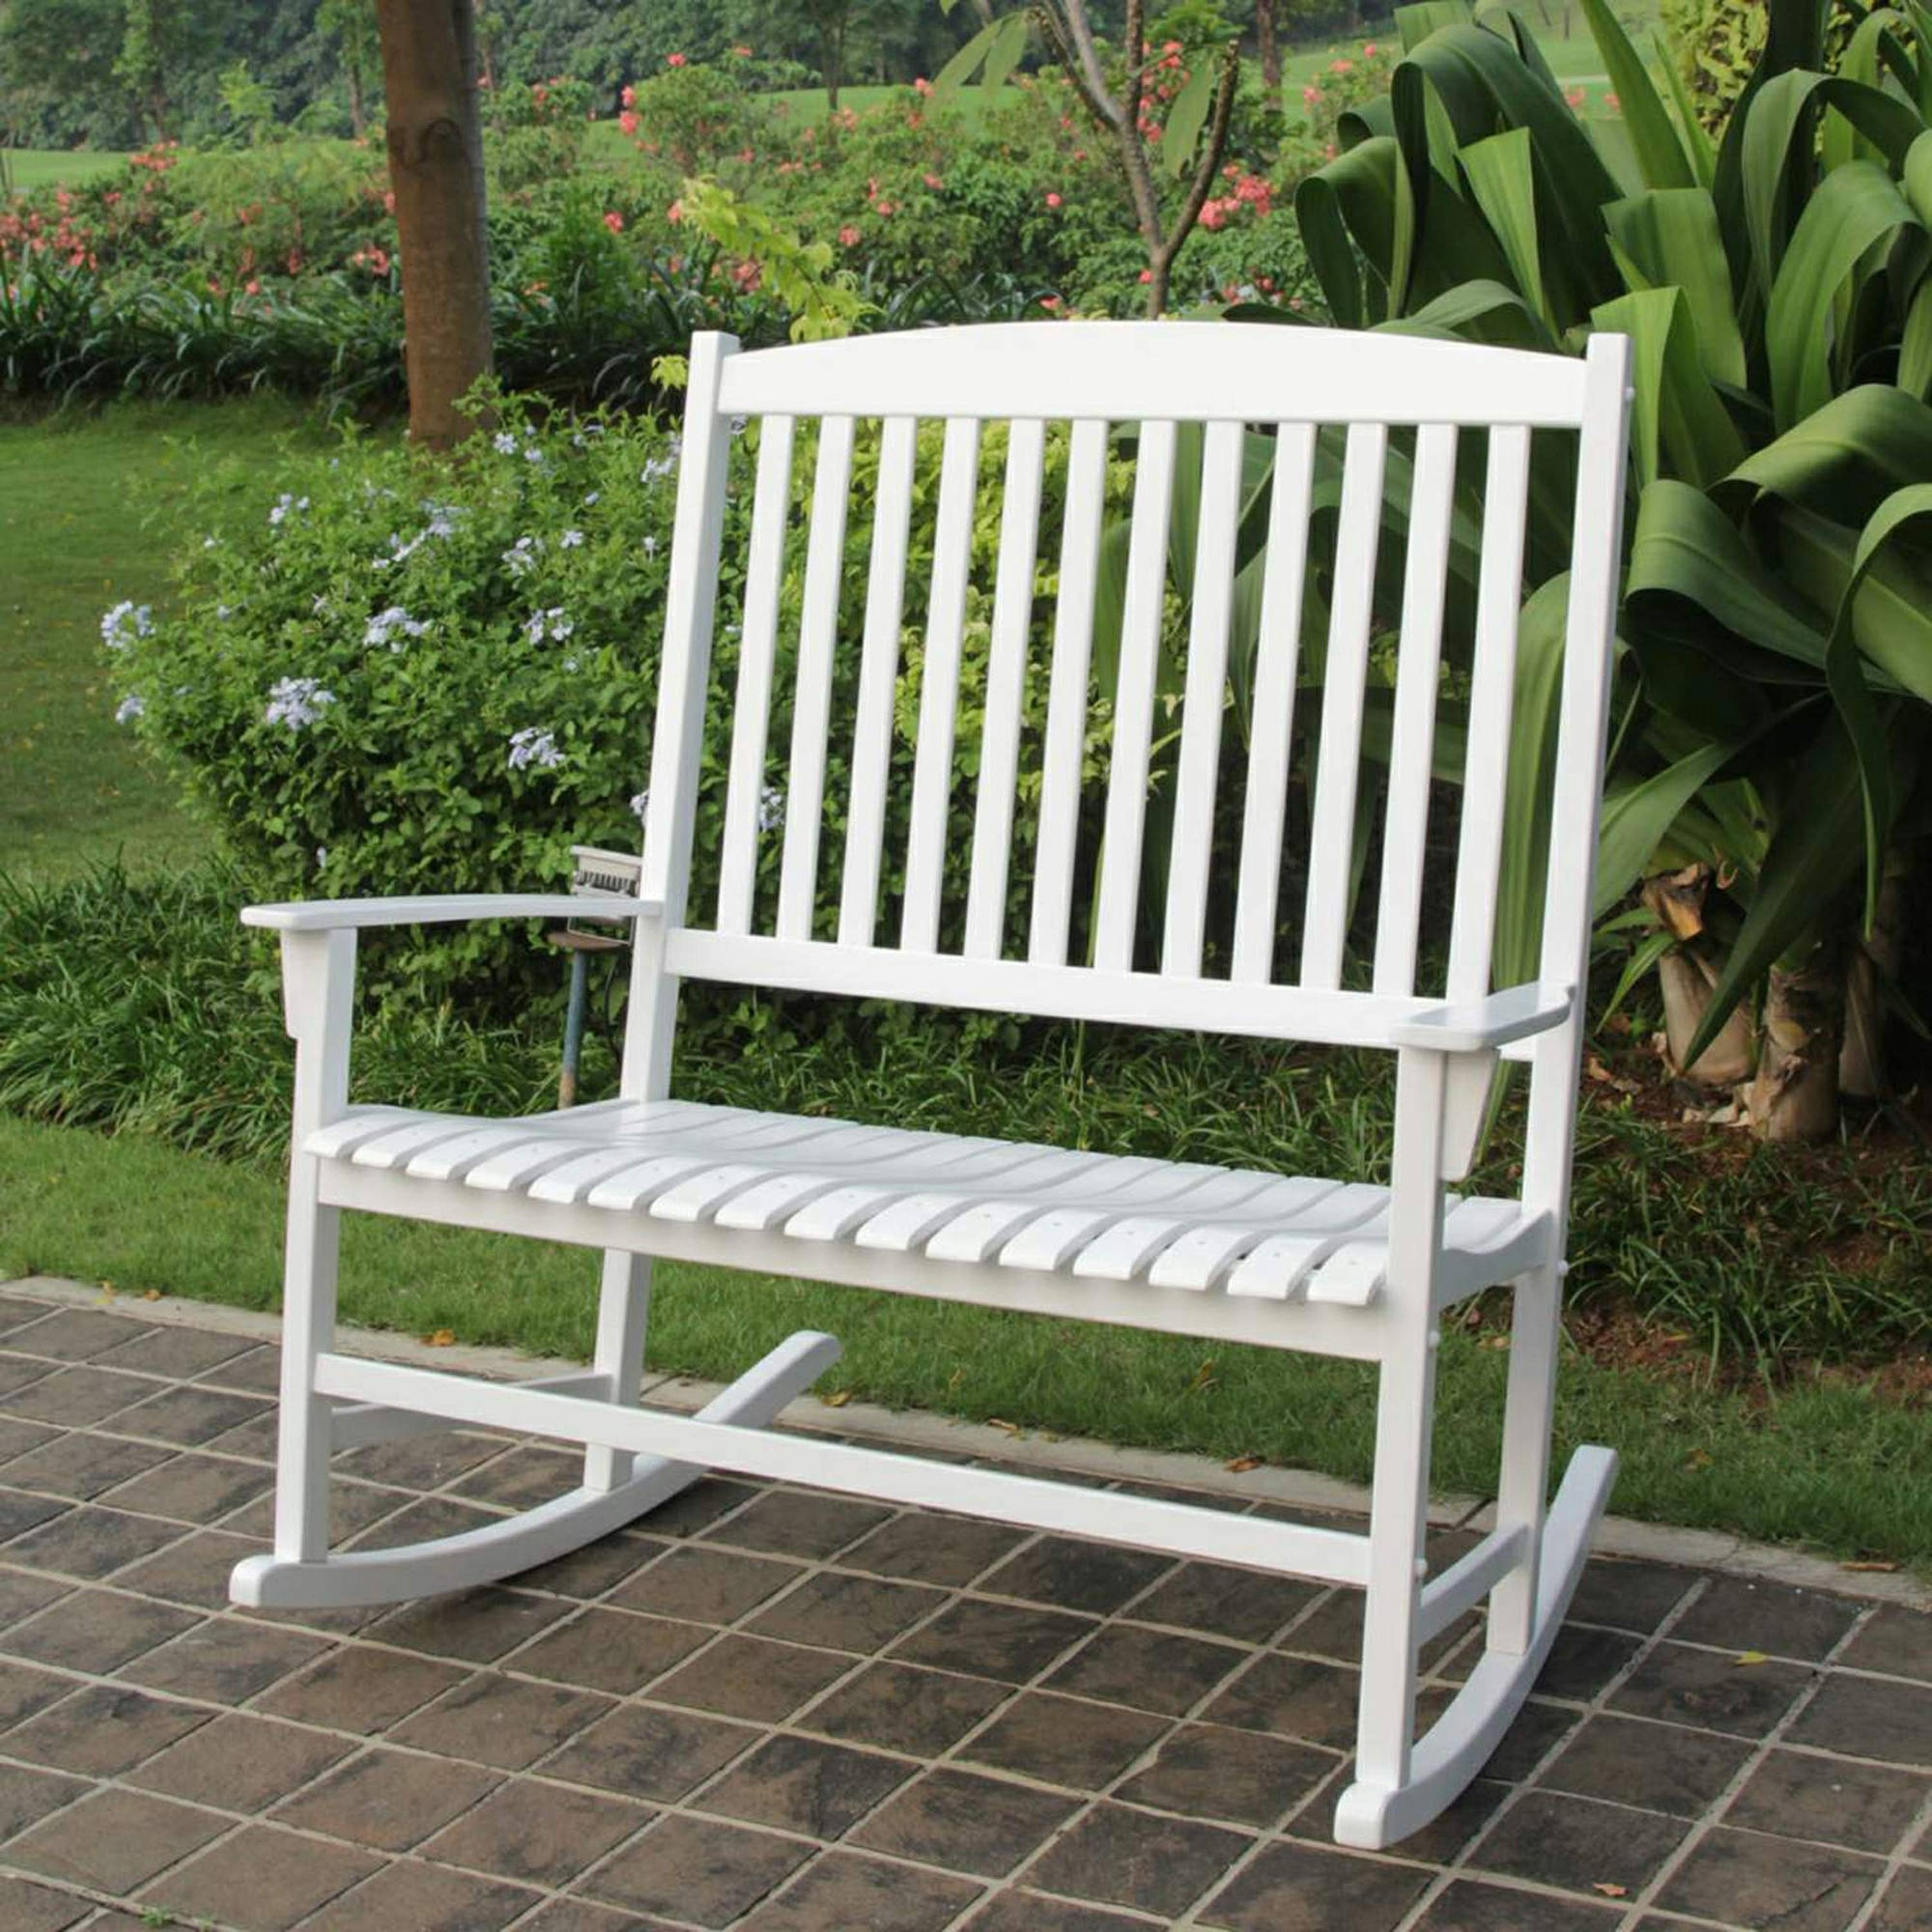 Inspiration about Patio Loveseat White Hardwood Outdoor Rocking Chair For 2 Inside Patio Wooden Rocking Chairs (#10 of 15)